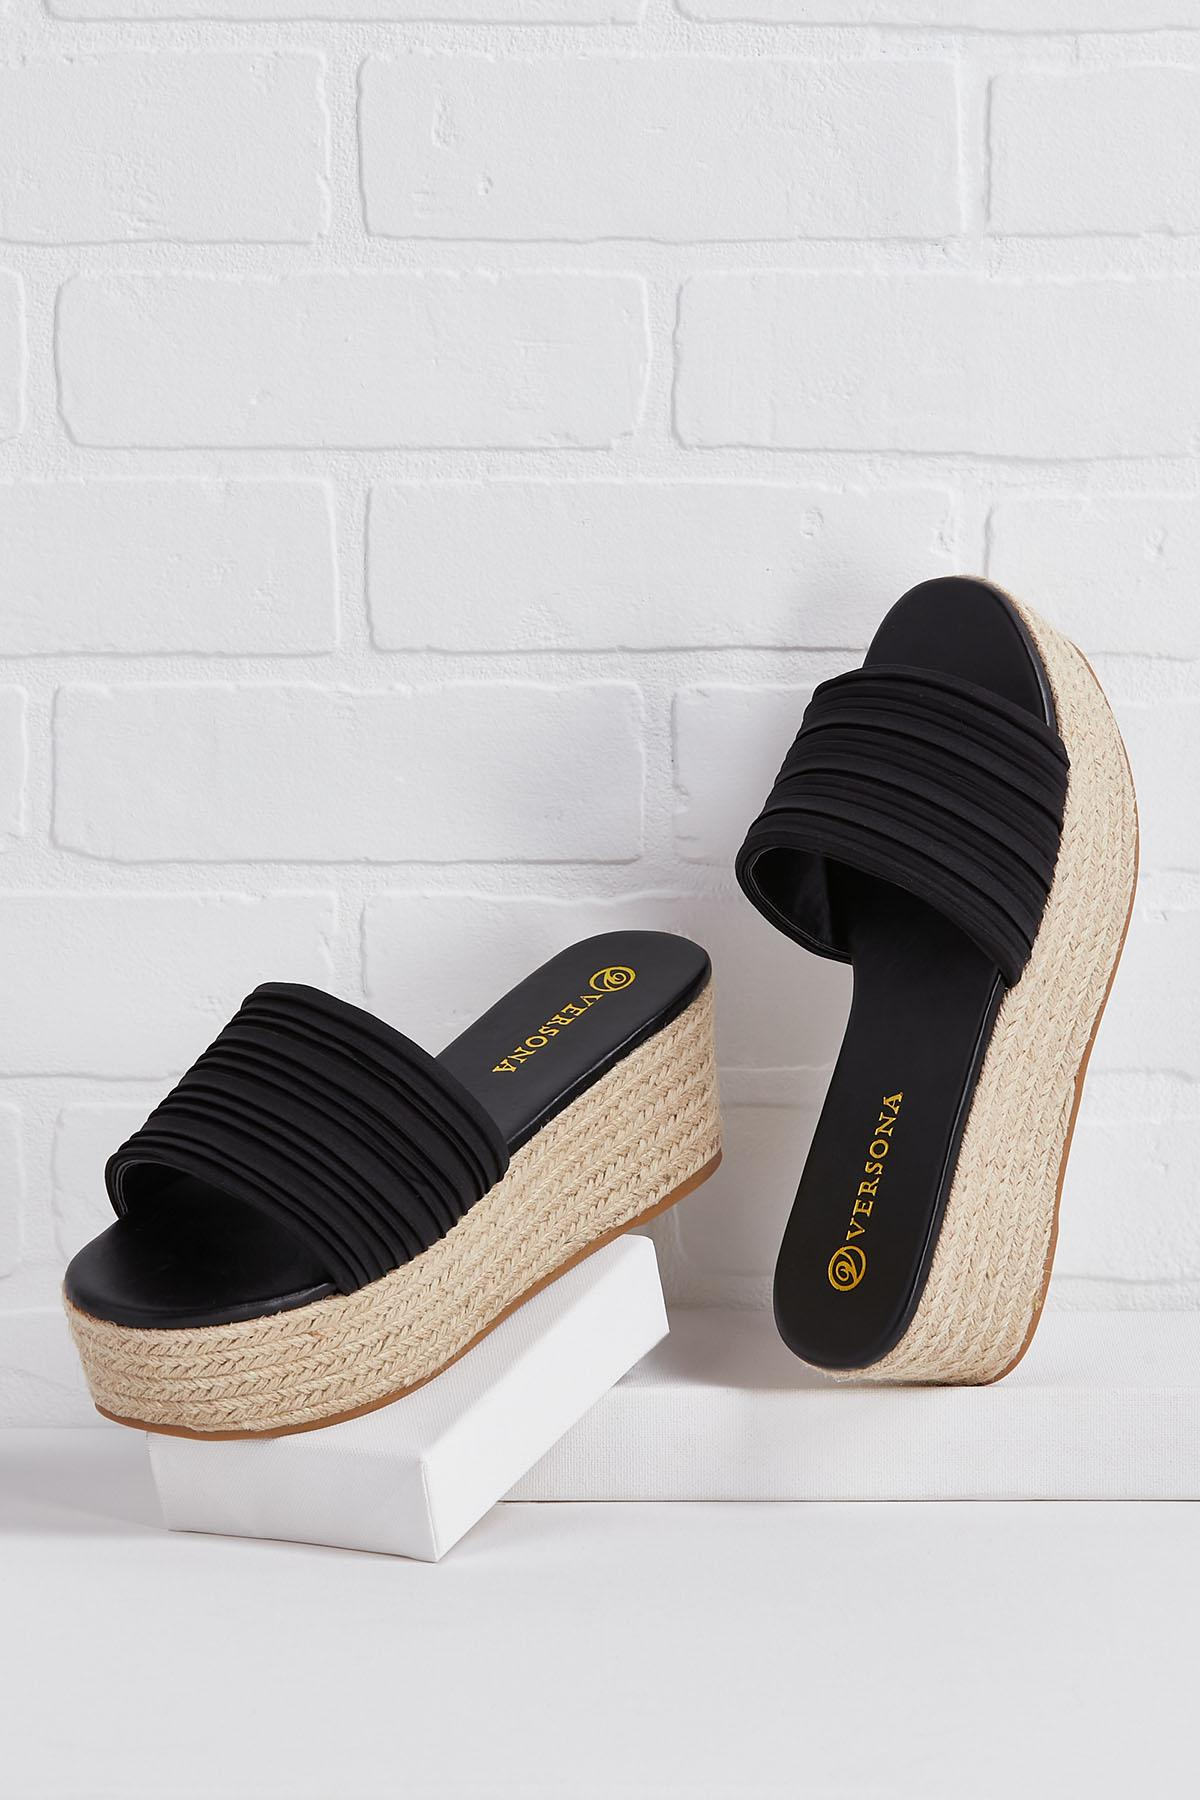 Paid Time Off Sandals